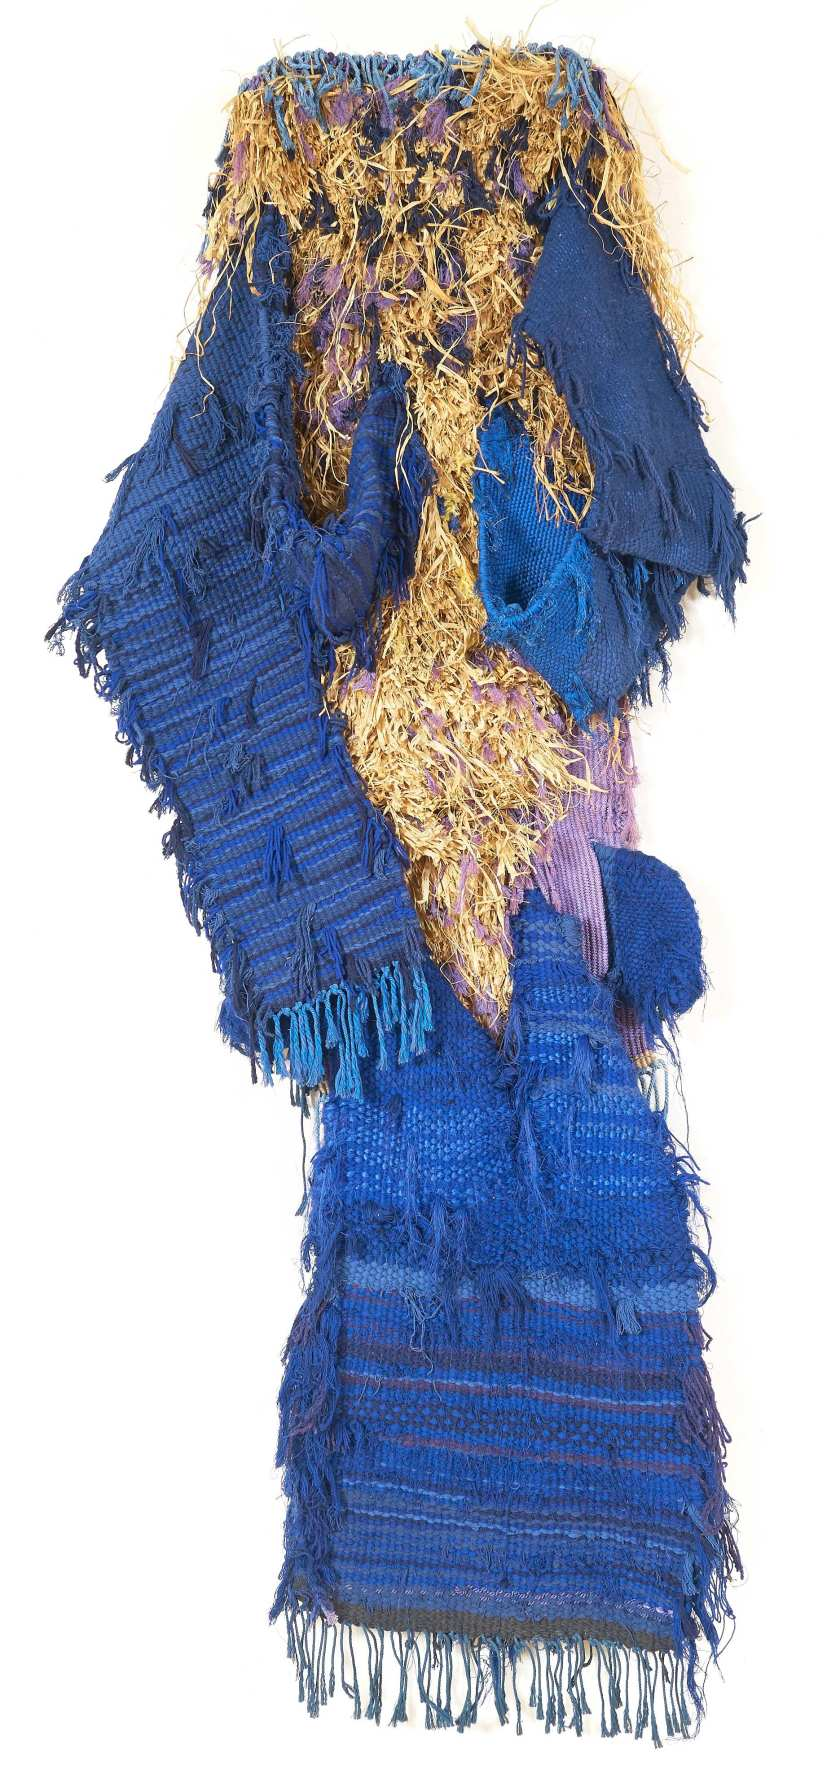 J. Grau Garrriga Blue Personnage, Cotton, wool and raffia  200x80 cm 1992.JPG